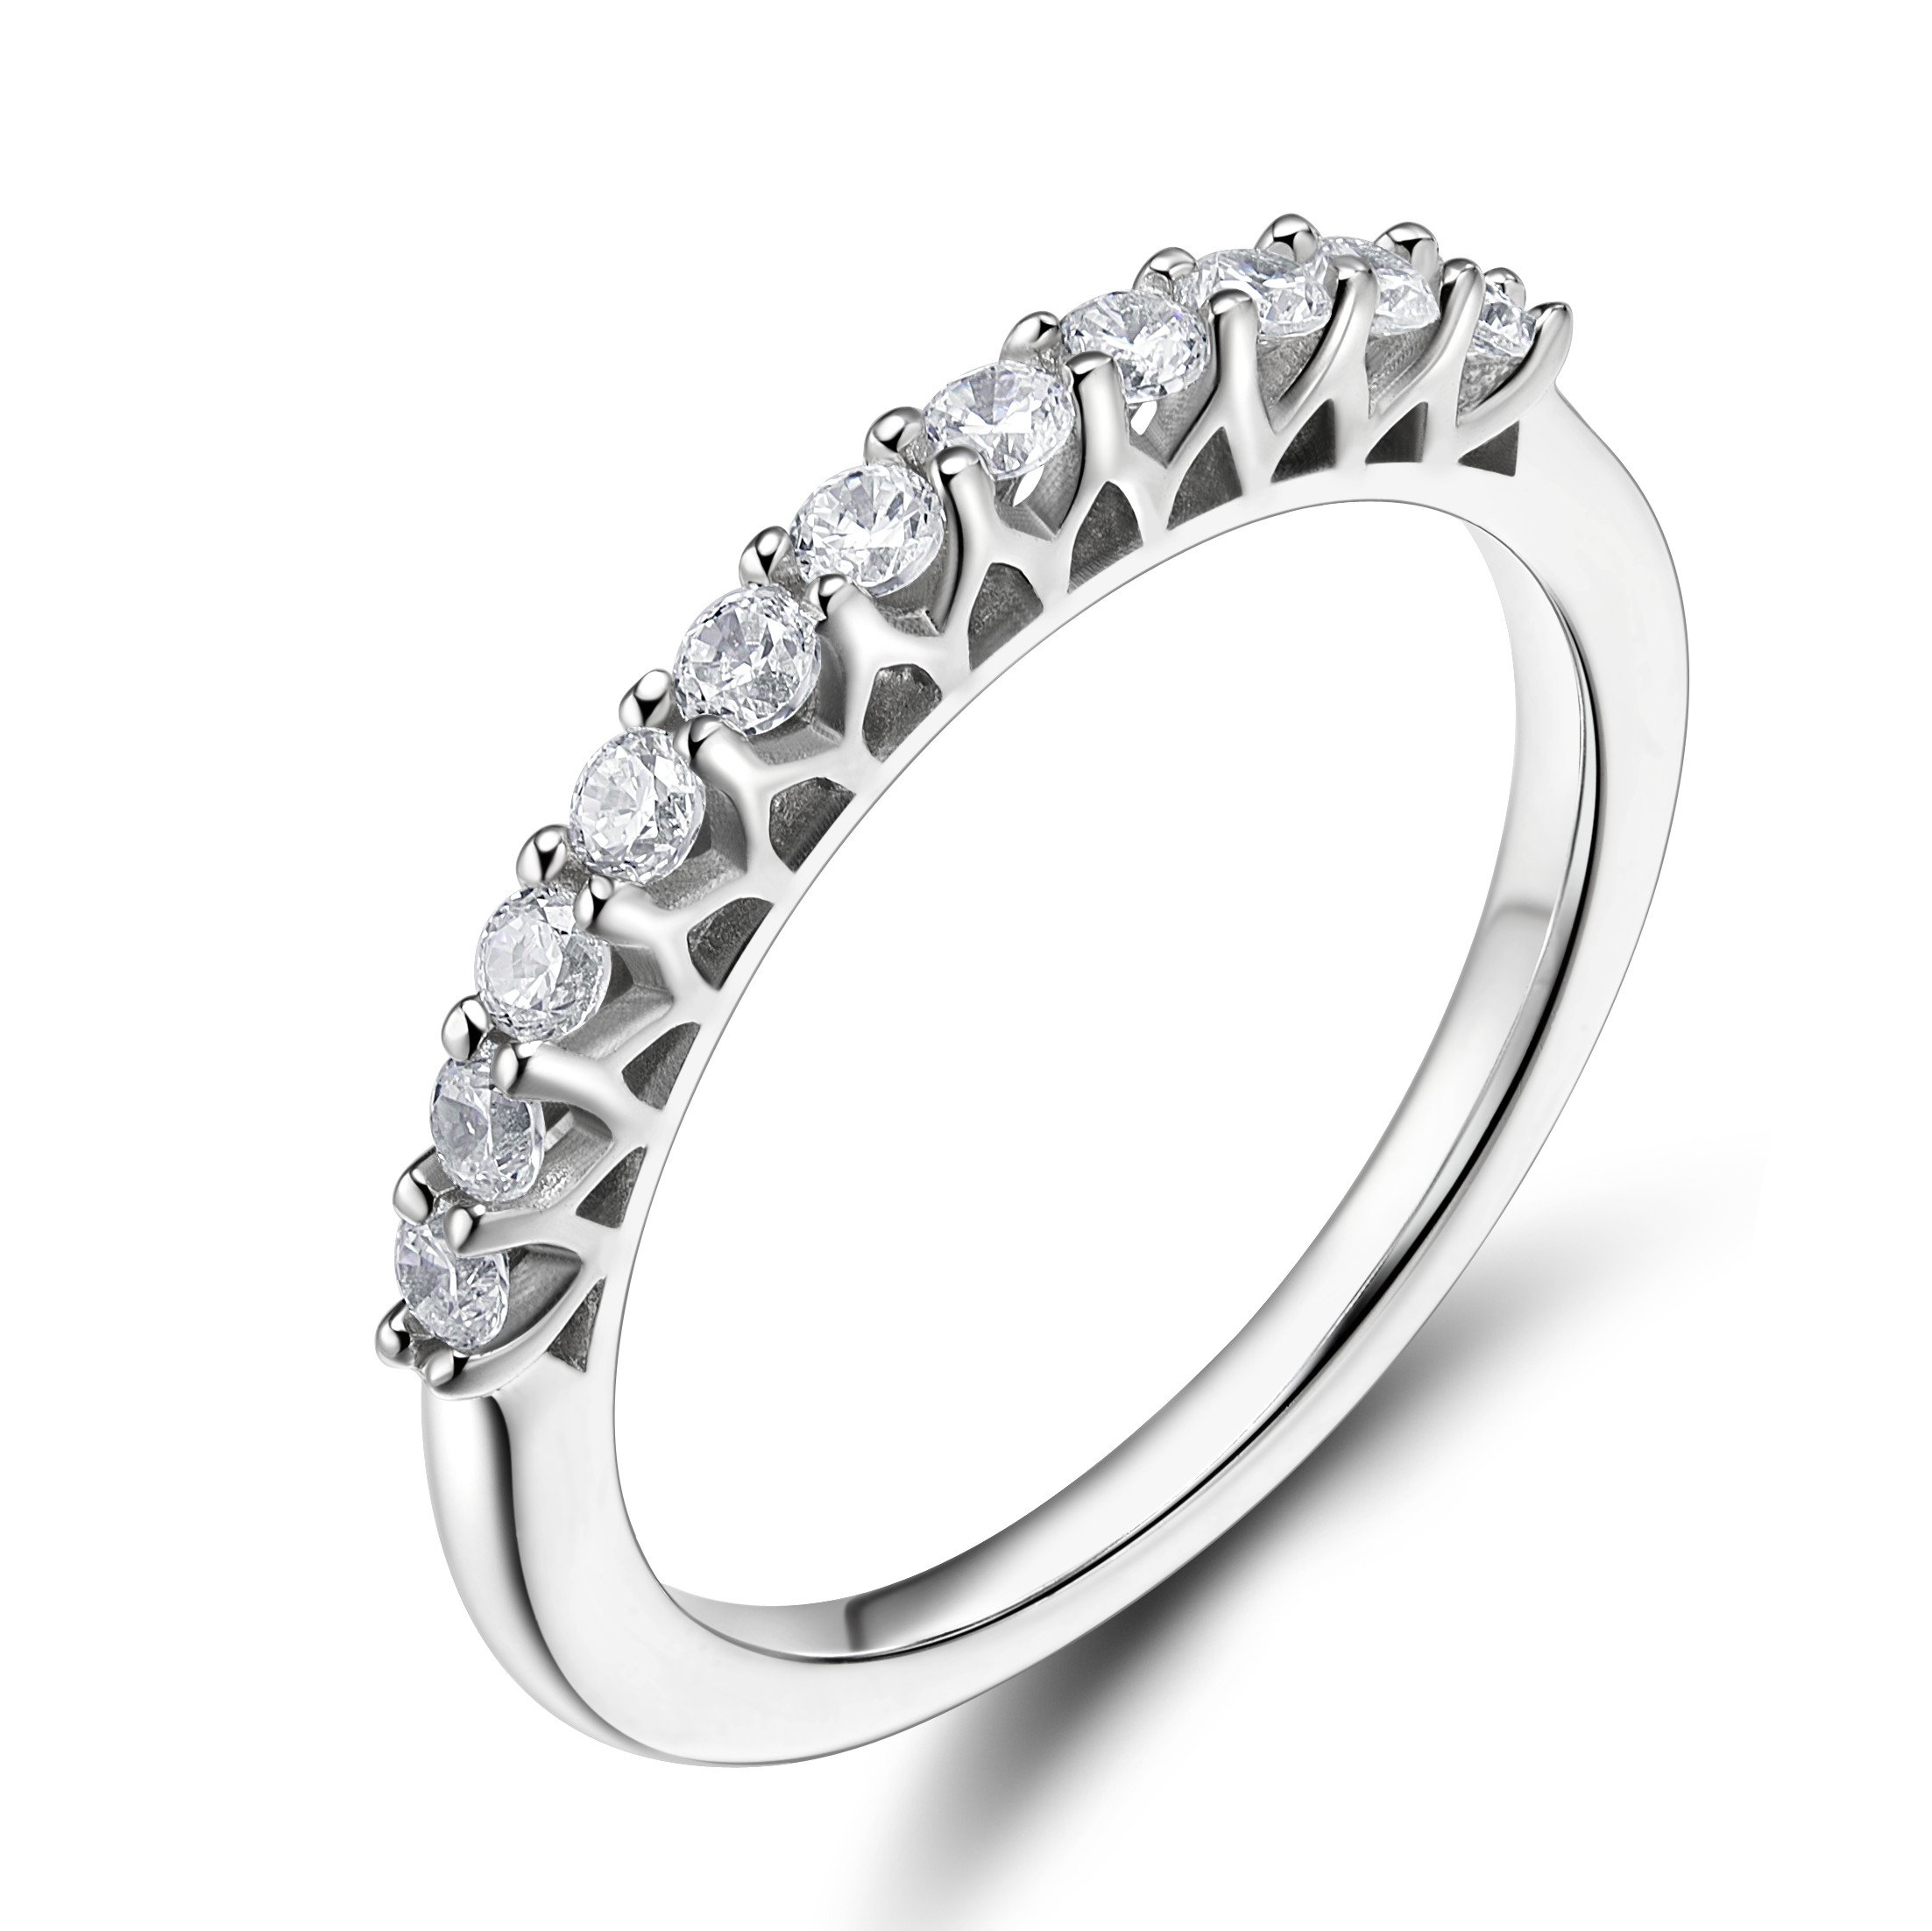 EAMTI 925 Sterling Silver Cubic Zirconia Half Eternity Ring Engagement Wedding Band (8)